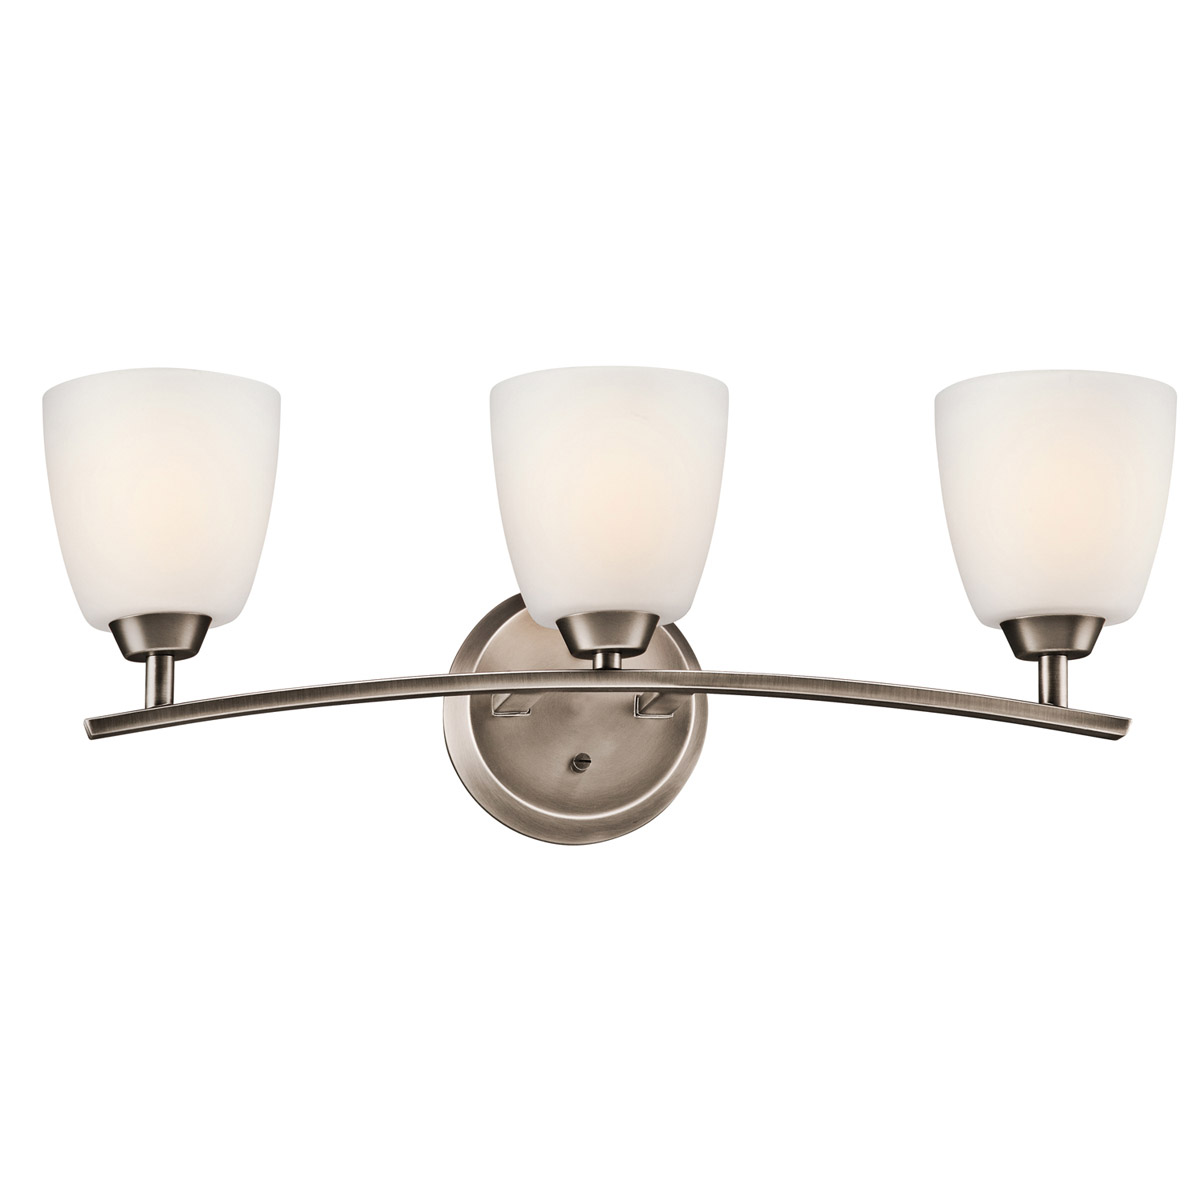 Kichler 45360bpt Granby Bathroom Vanity Light